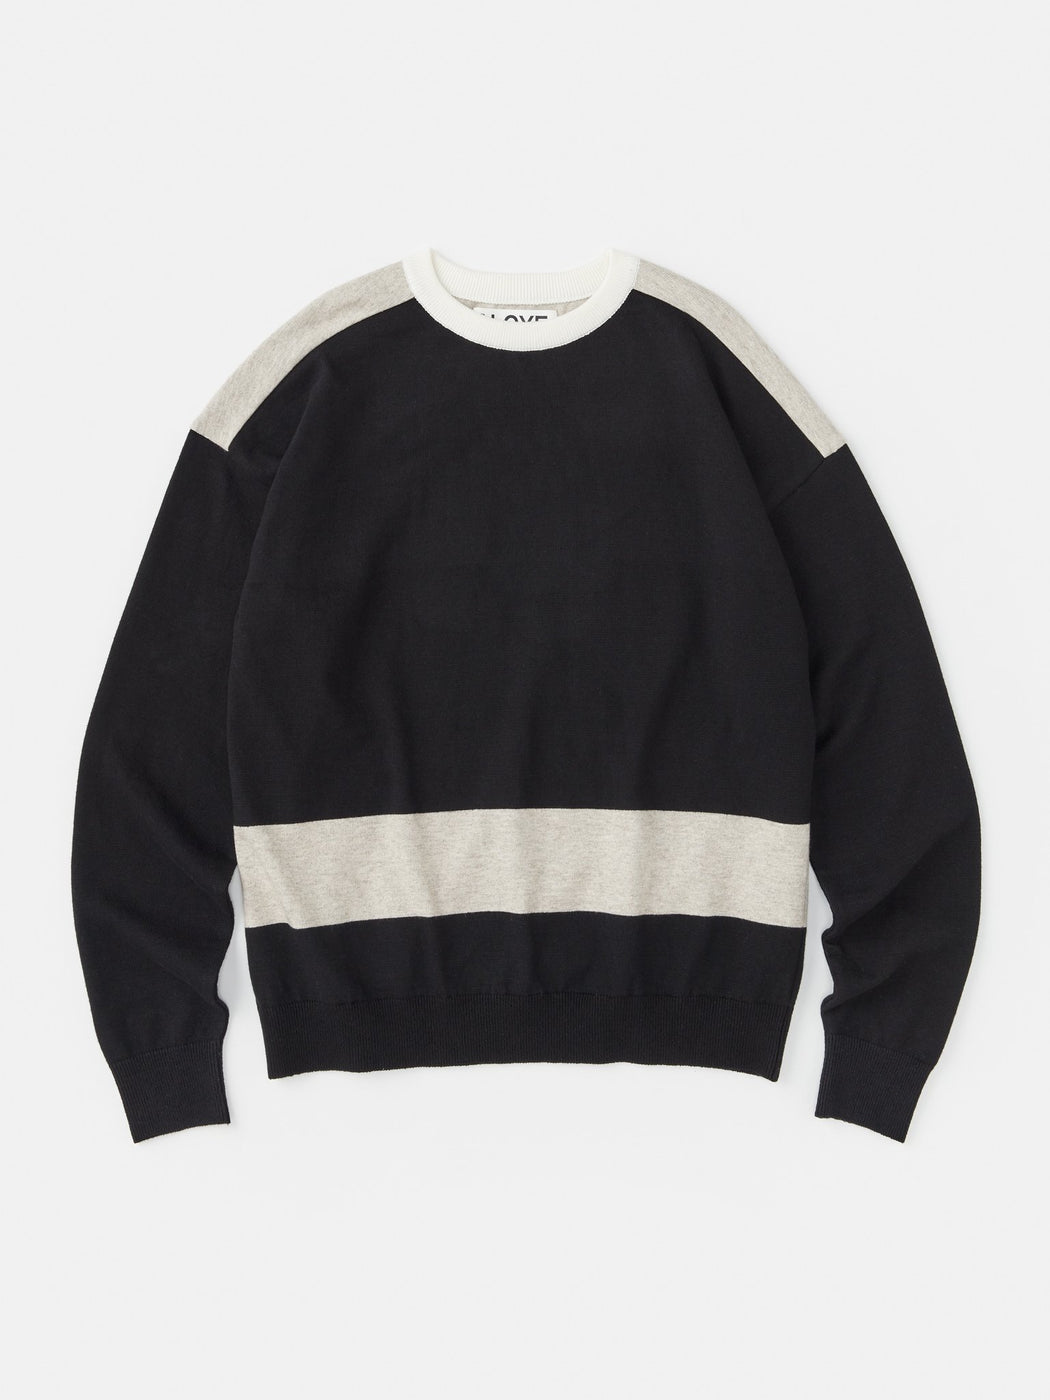 ALOYE G.F.G.S. Cotton Knitted Sweater Black-Heather Gray